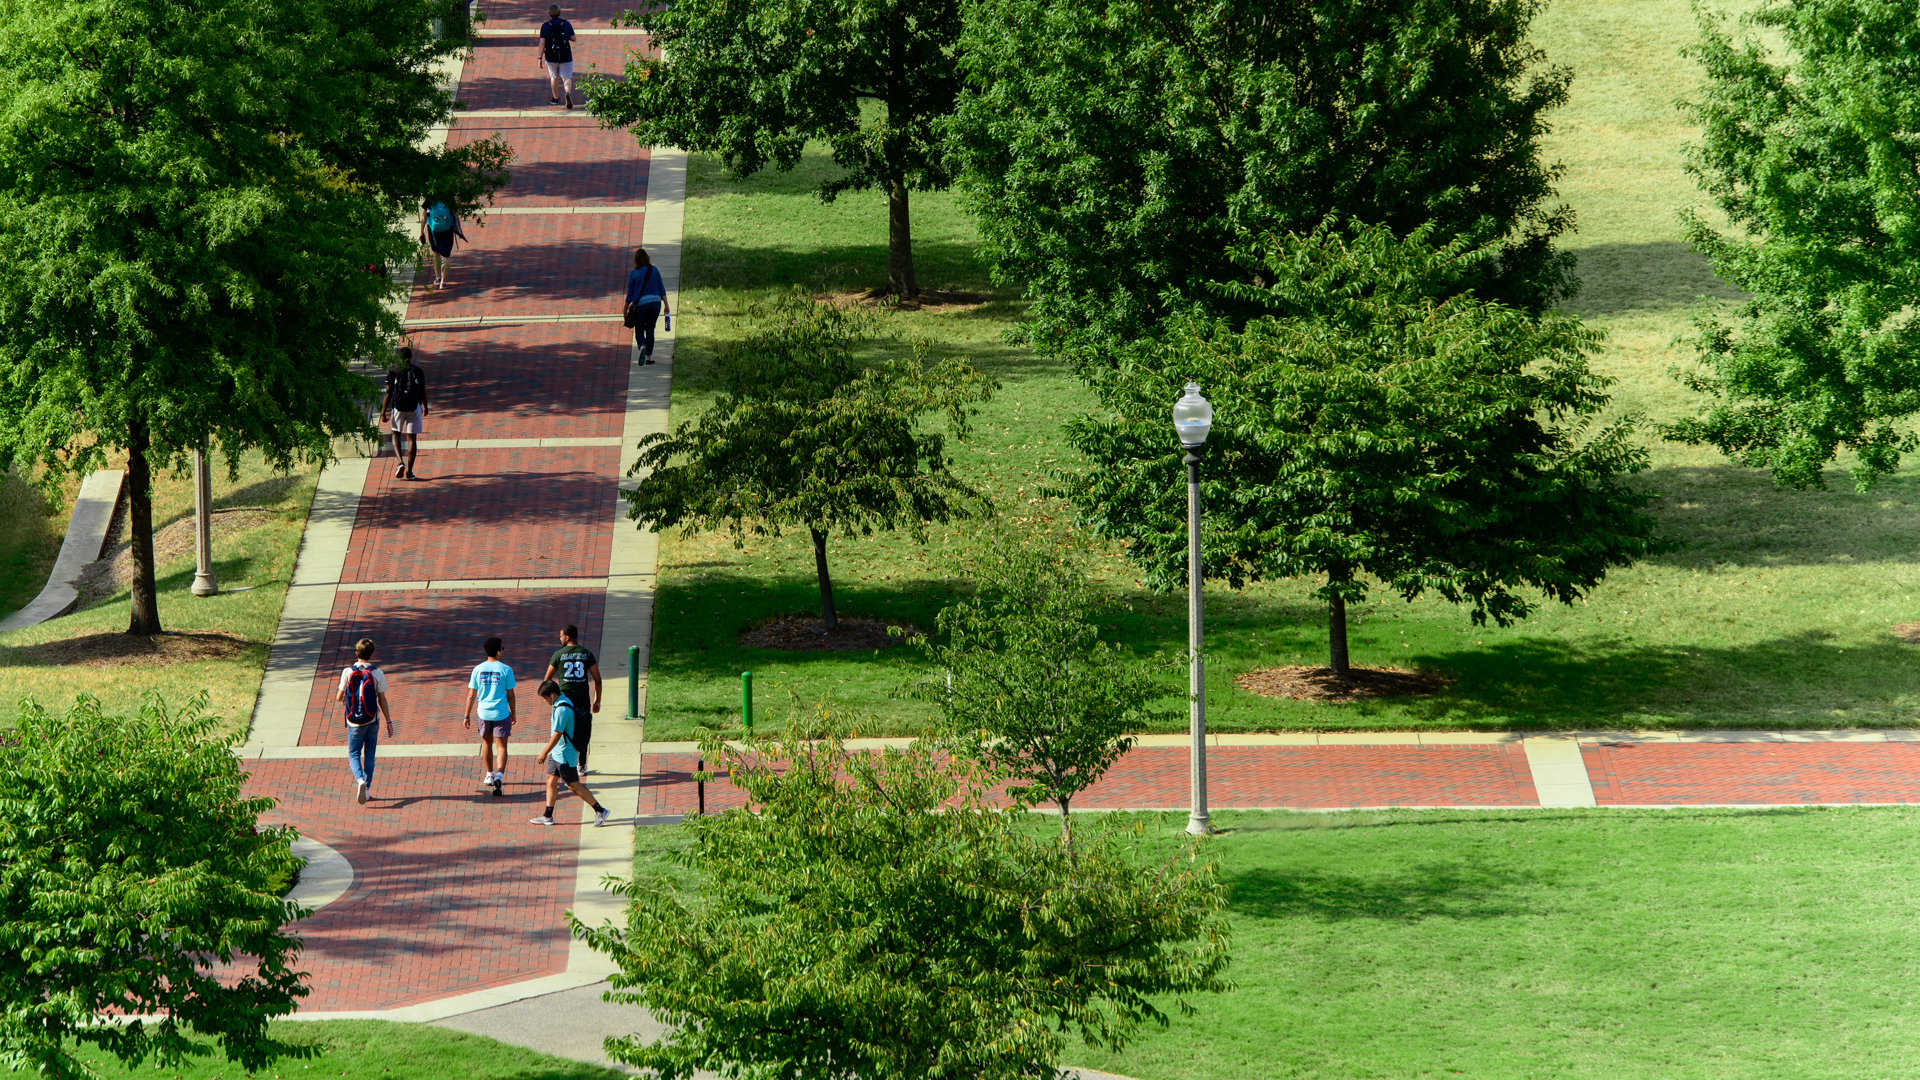 Students walking on the campus green.